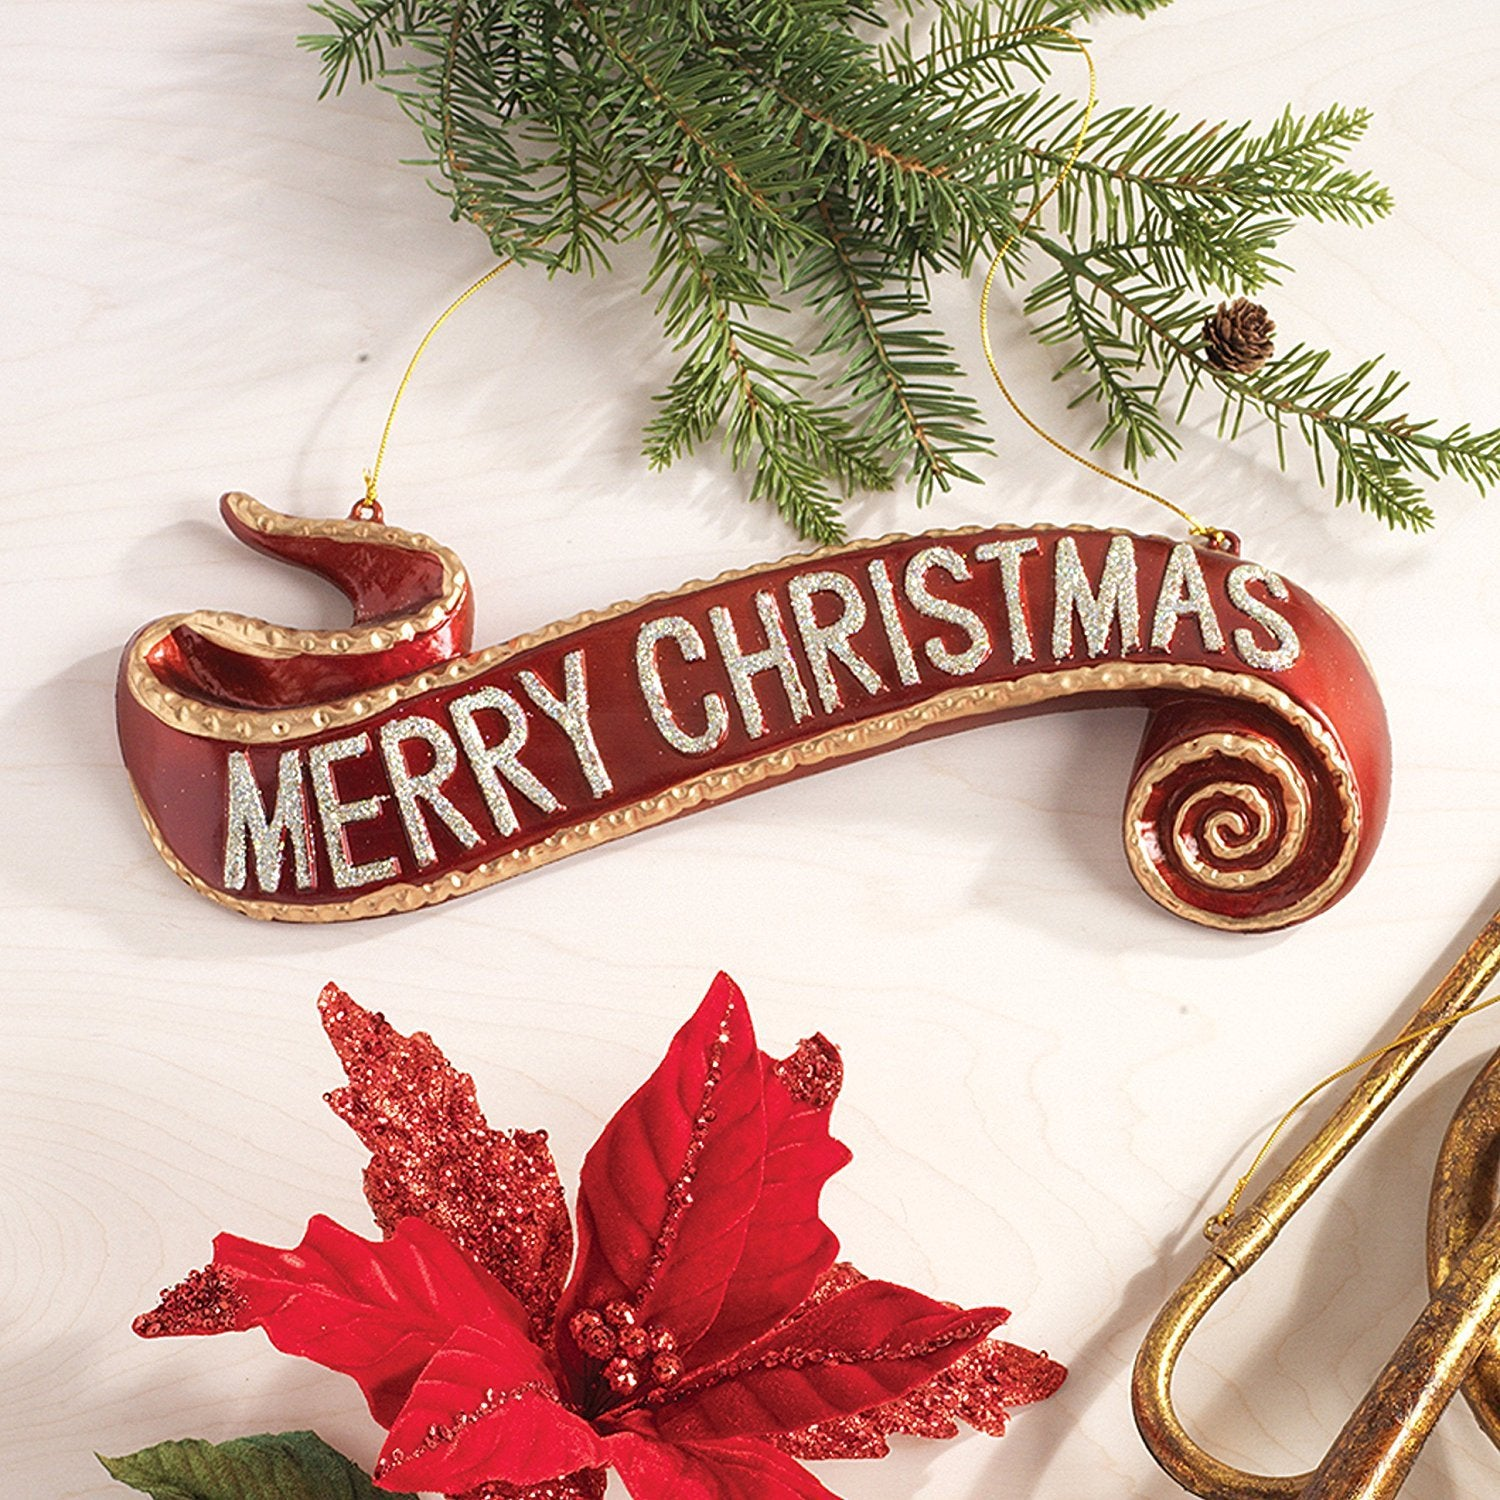 large red and gold merry christmas scroll banner tree ornament 7 inch one holiday way large red and gold merry christmas scroll banner tree ornament 7 inch x 15 5 inch